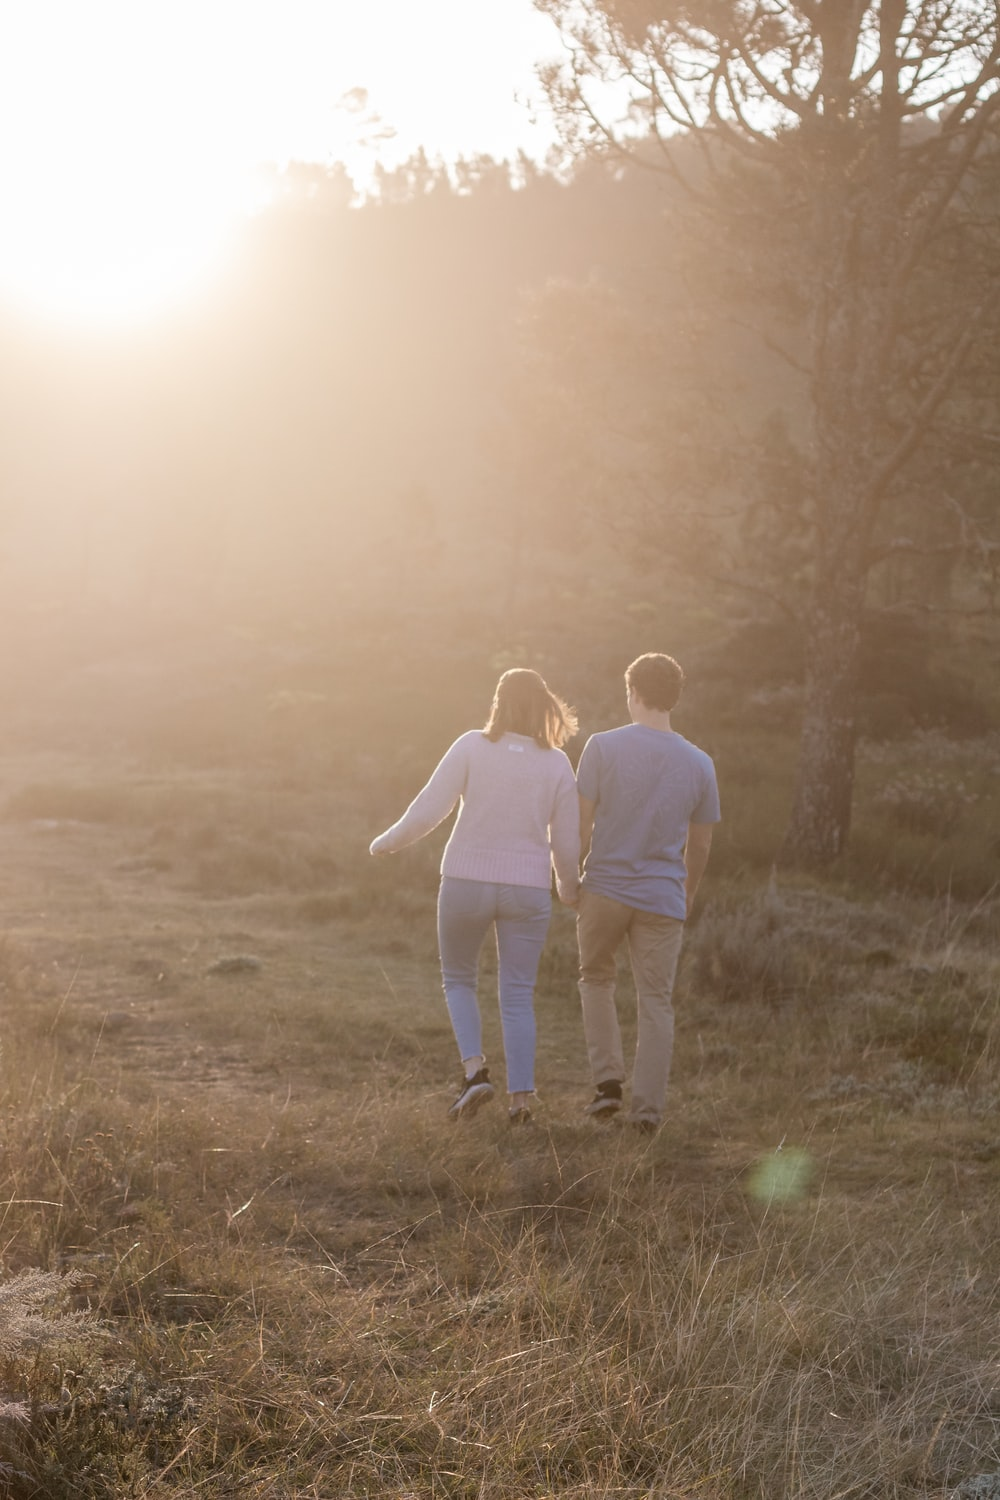 man and woman walking on grass field during daytime